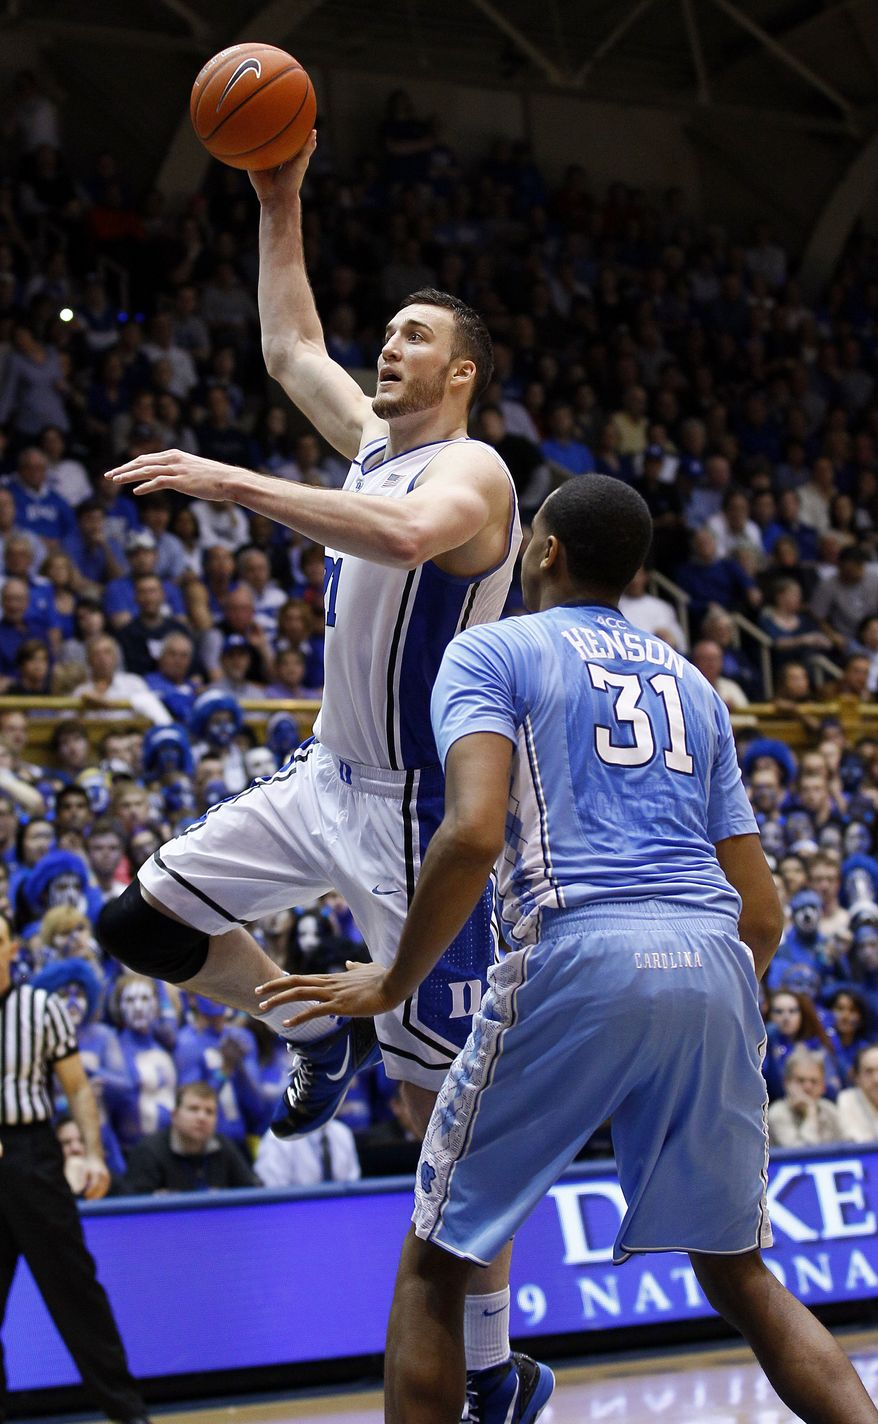 Duke's Miles Plumlee shoots as North Carolina's John Henson defends during the second half in Durham, N.C., on Saturday, March 3, 2012. North Carolina won 88-70. (AP Photo/Gerry Broome)